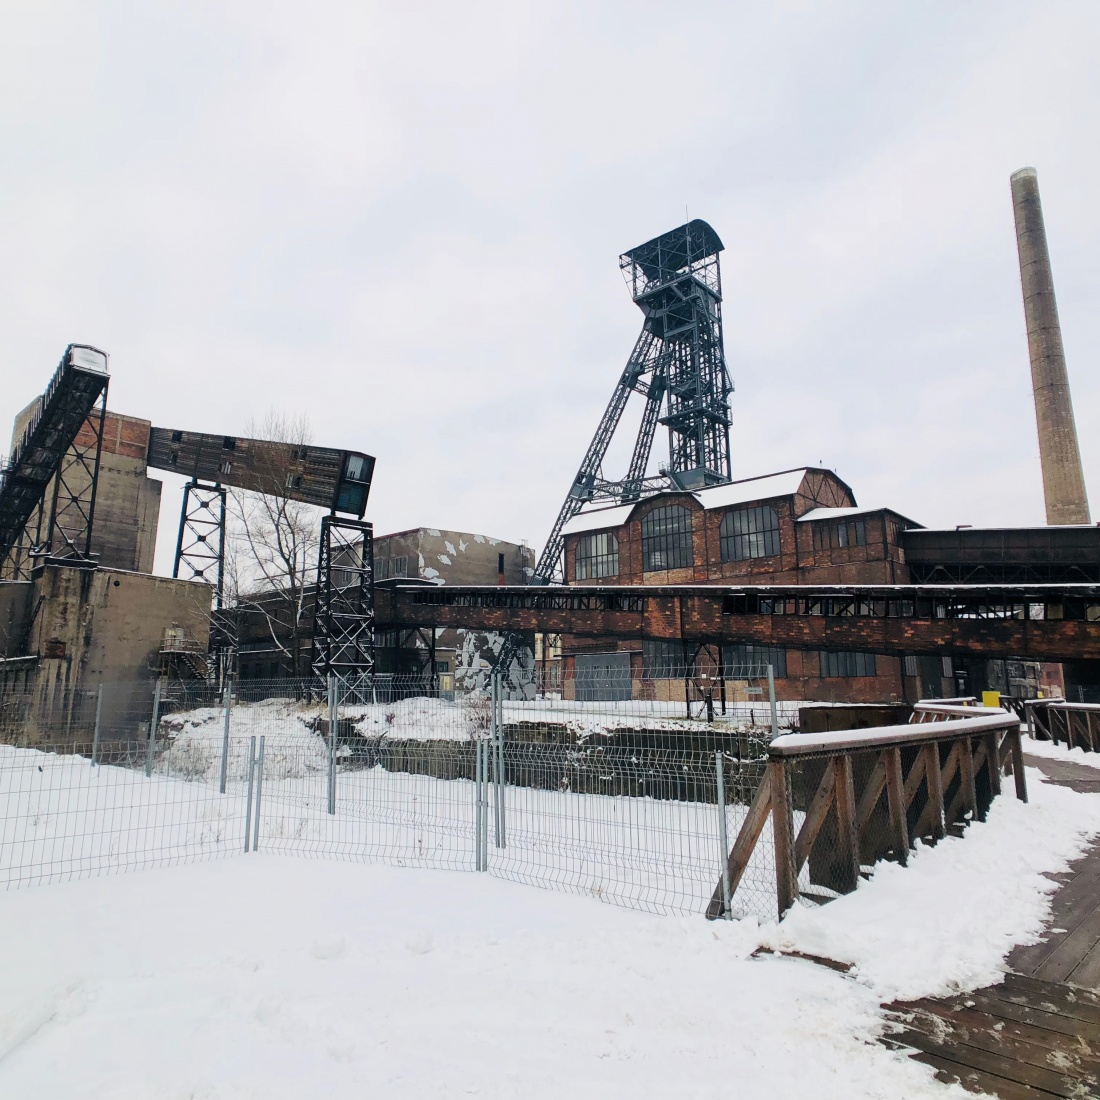 Infrastructure of Dolni Vitkovice, the former steel mill complex, in Ostrava, Czech Republic.